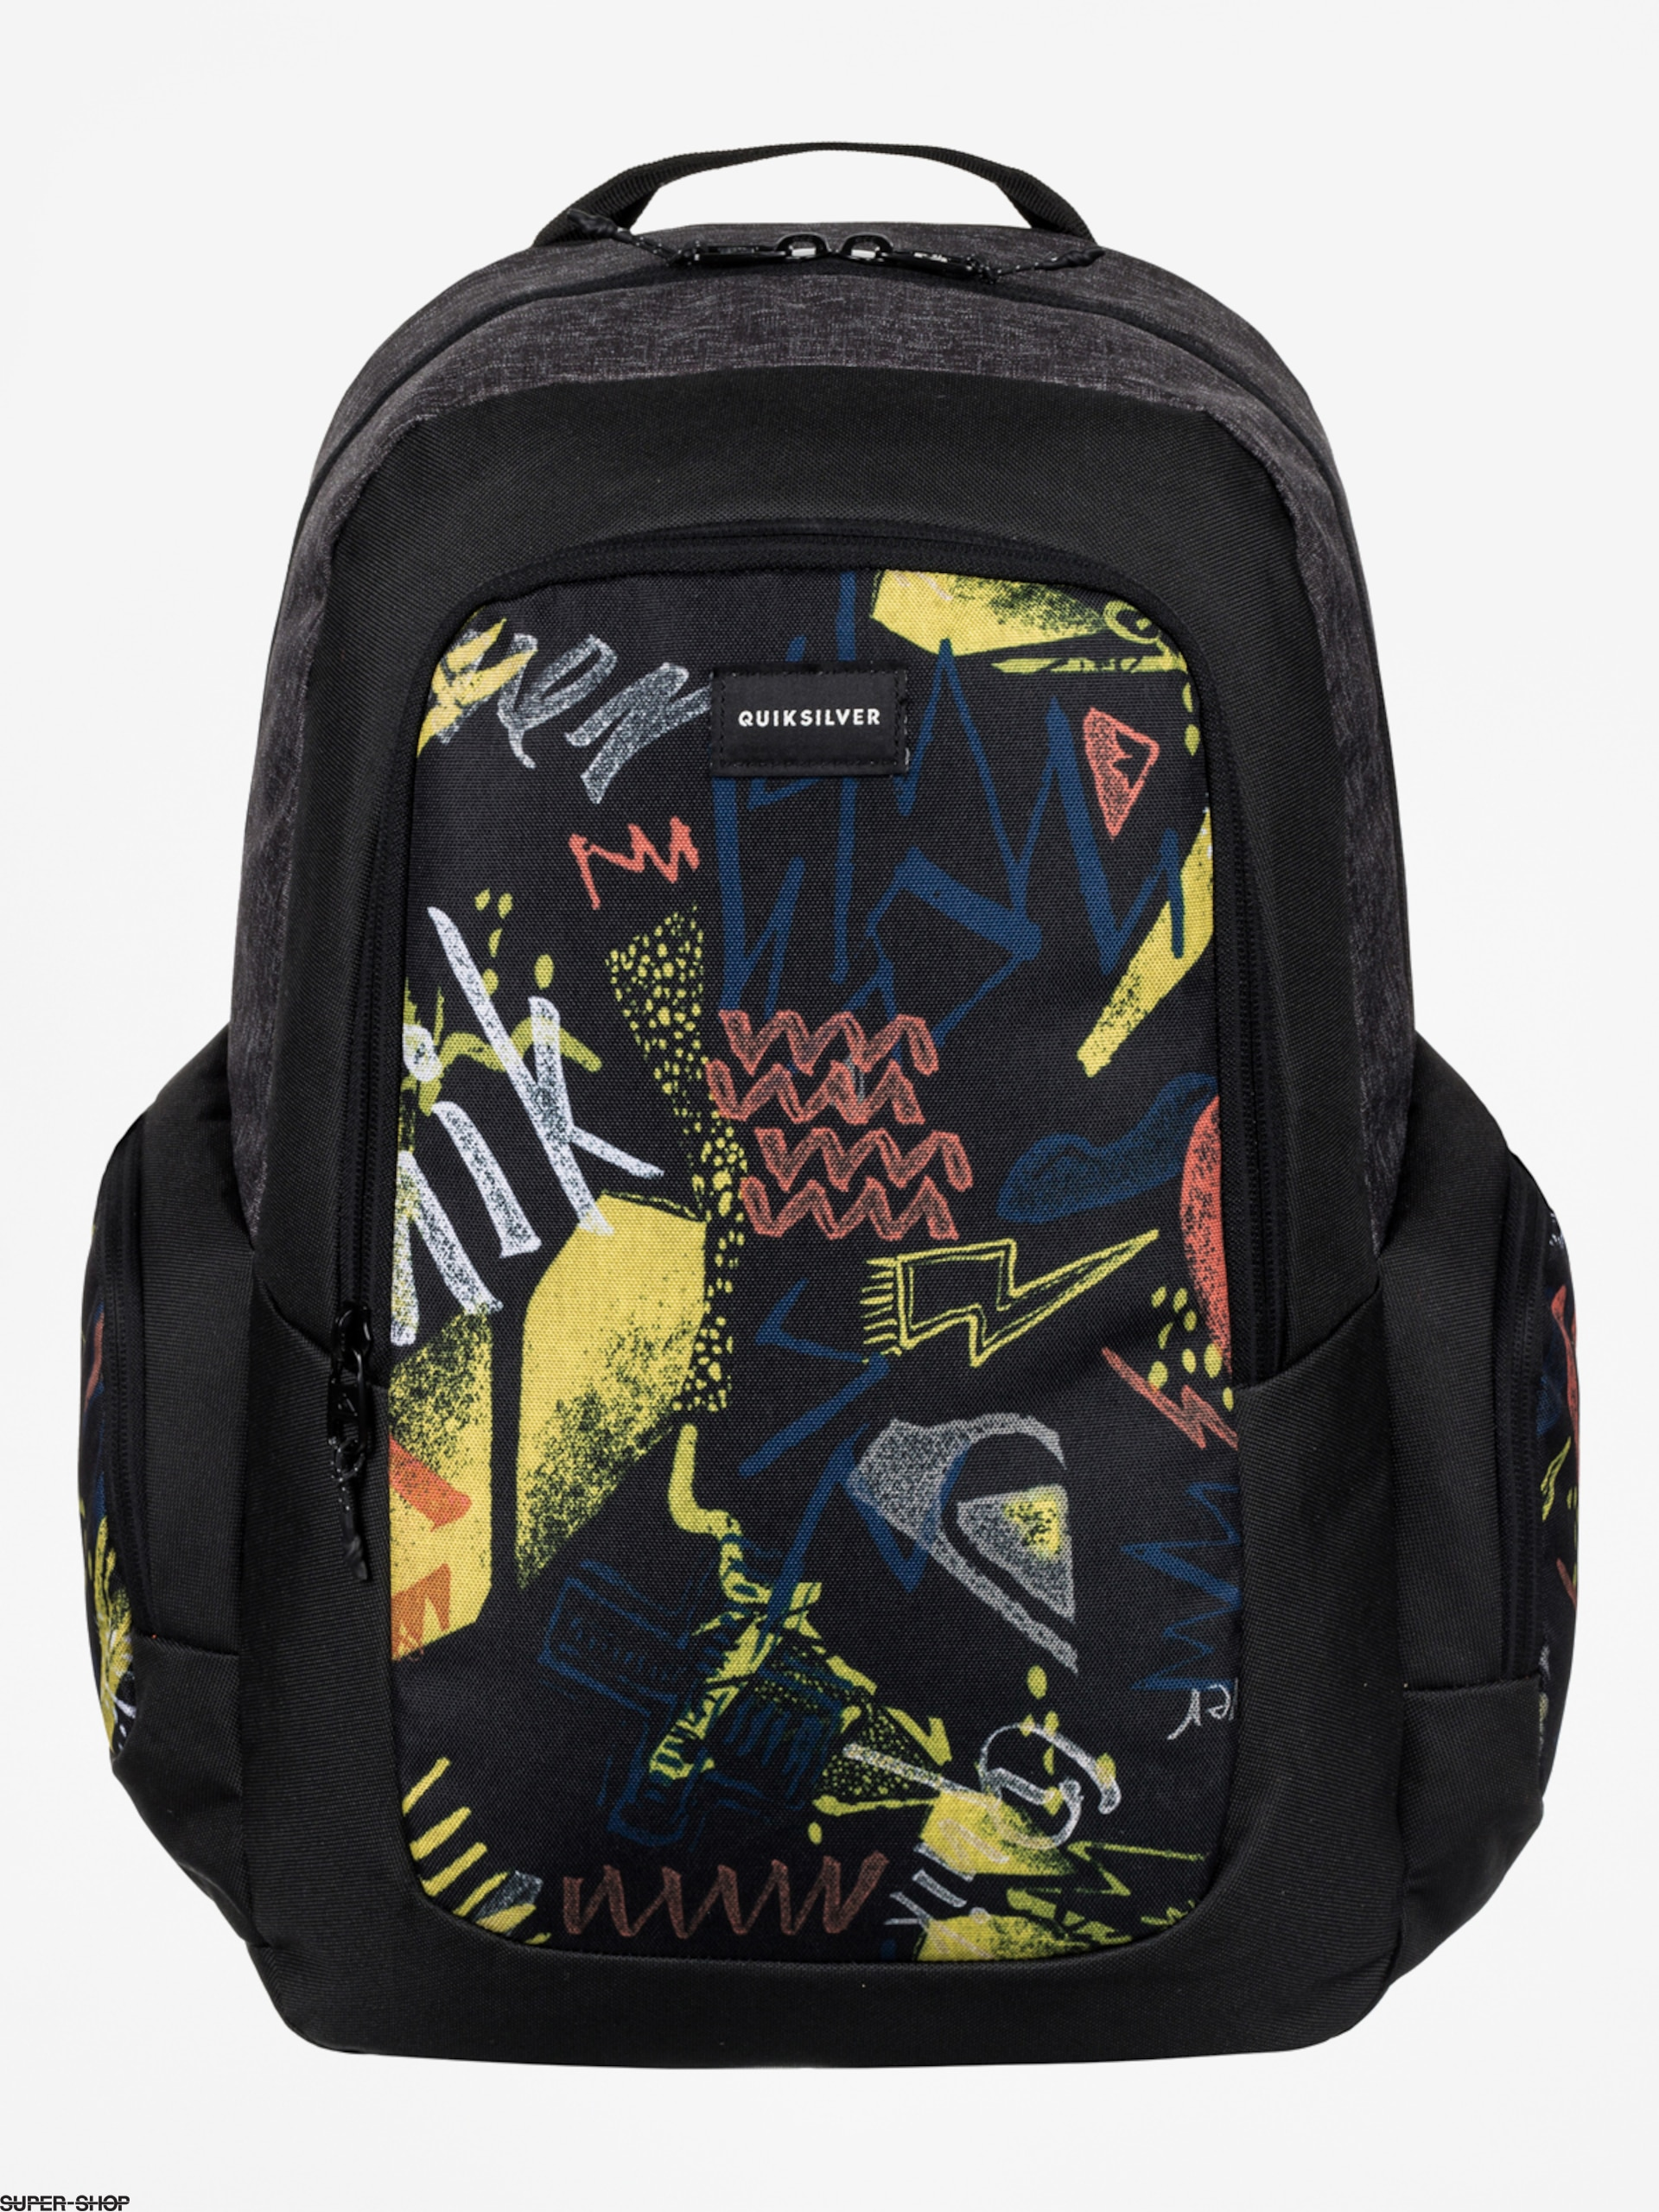 Quiksilver Backpack Schoolie (black thunder bolts)